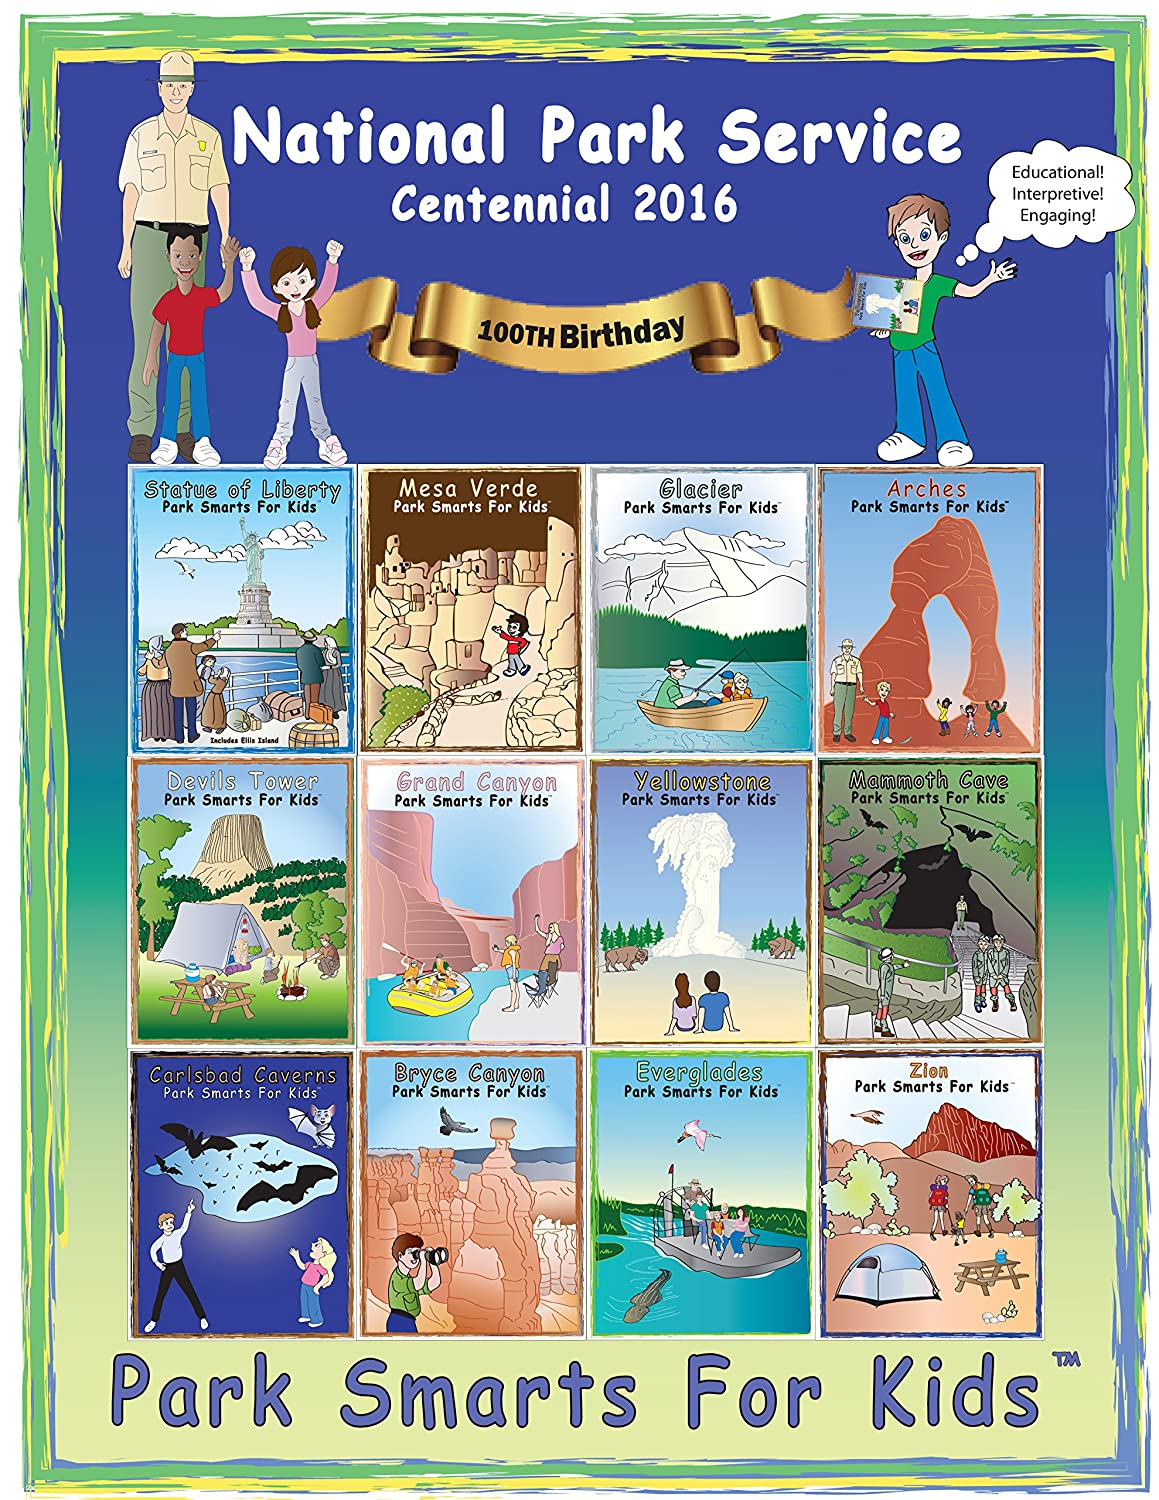 2 Pack Arches National Park and National Park Service Centennial 2016 Park Smarts For Kids Activity Book Set